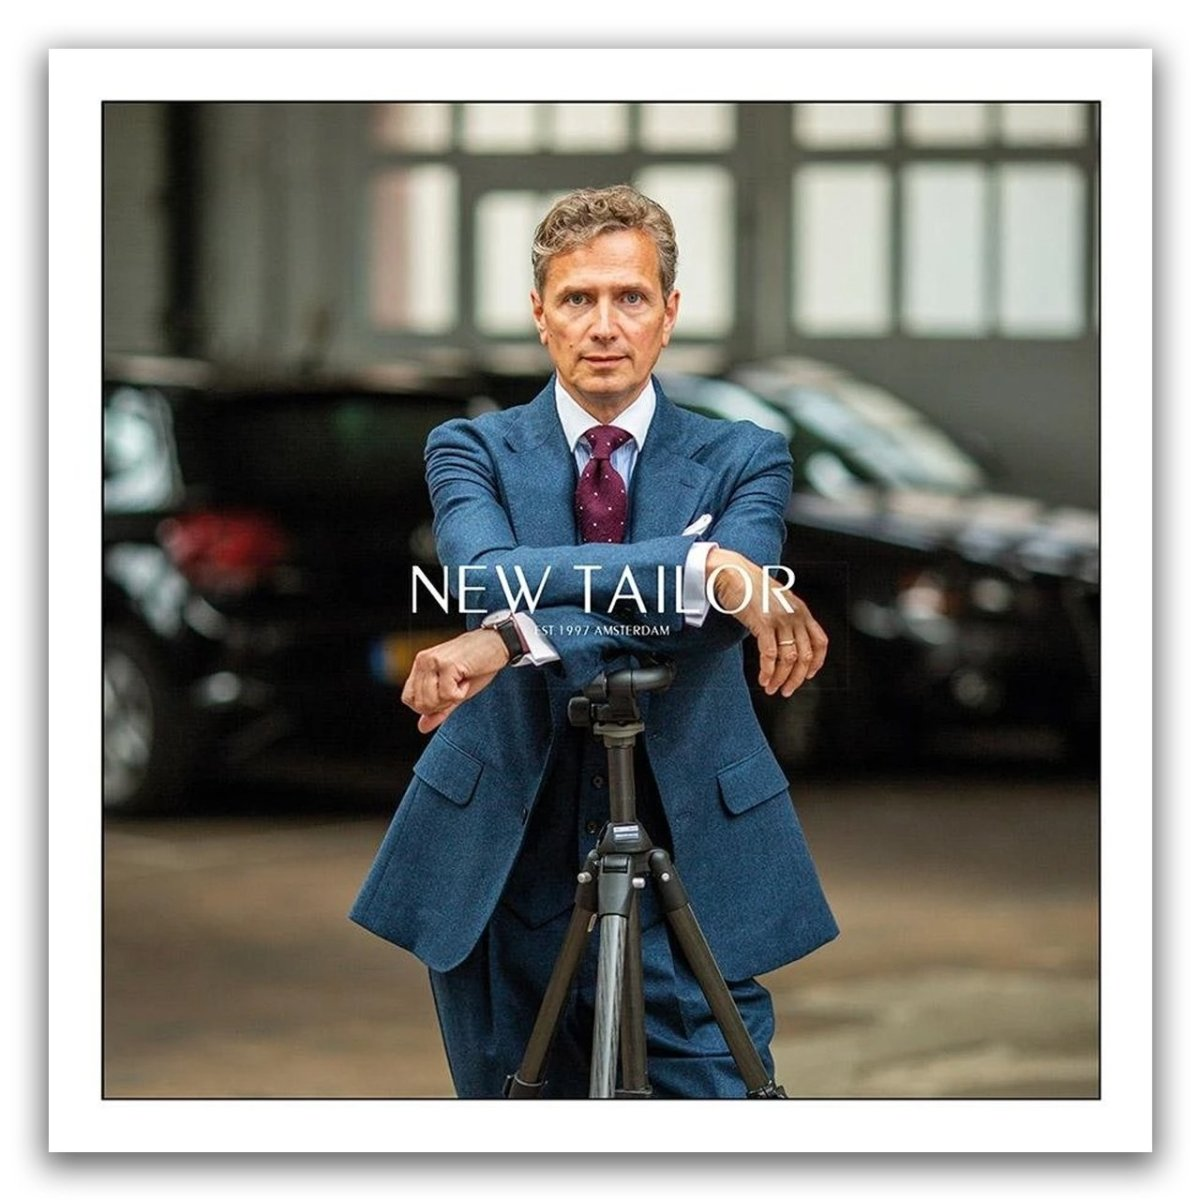 NEW TAILOR - Magazine, Herfst & Winter 2019, Boeken | NEW TAILOR Webshop